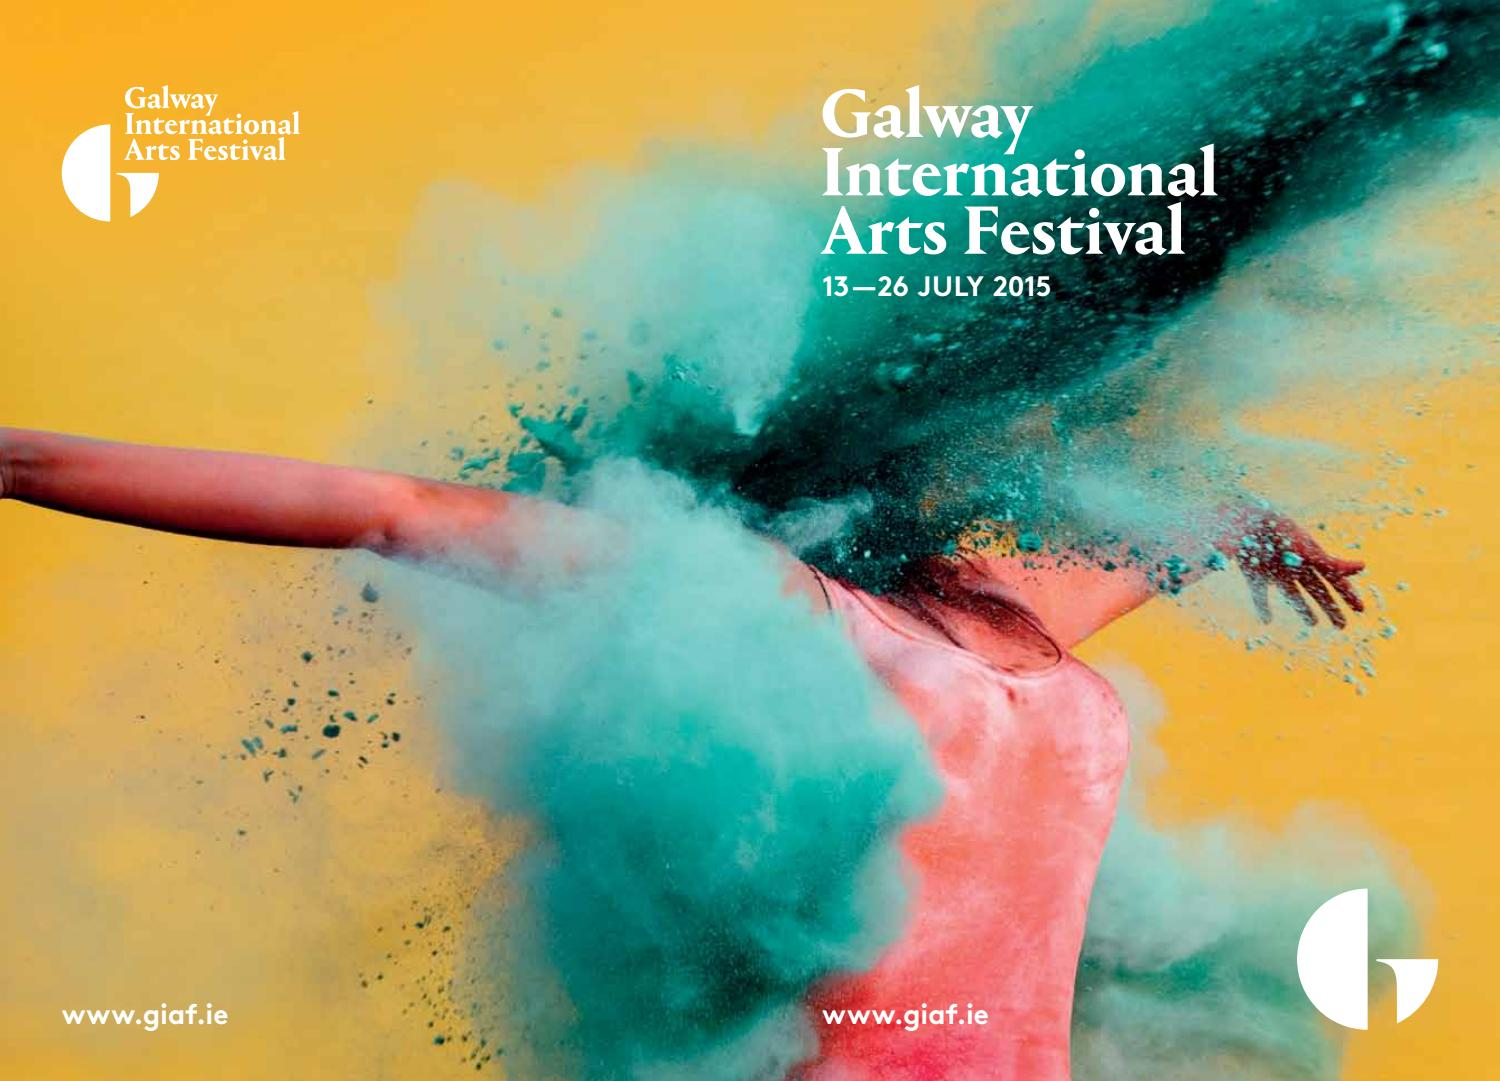 Poster design galway - Galway International Arts Festival Programme 2015